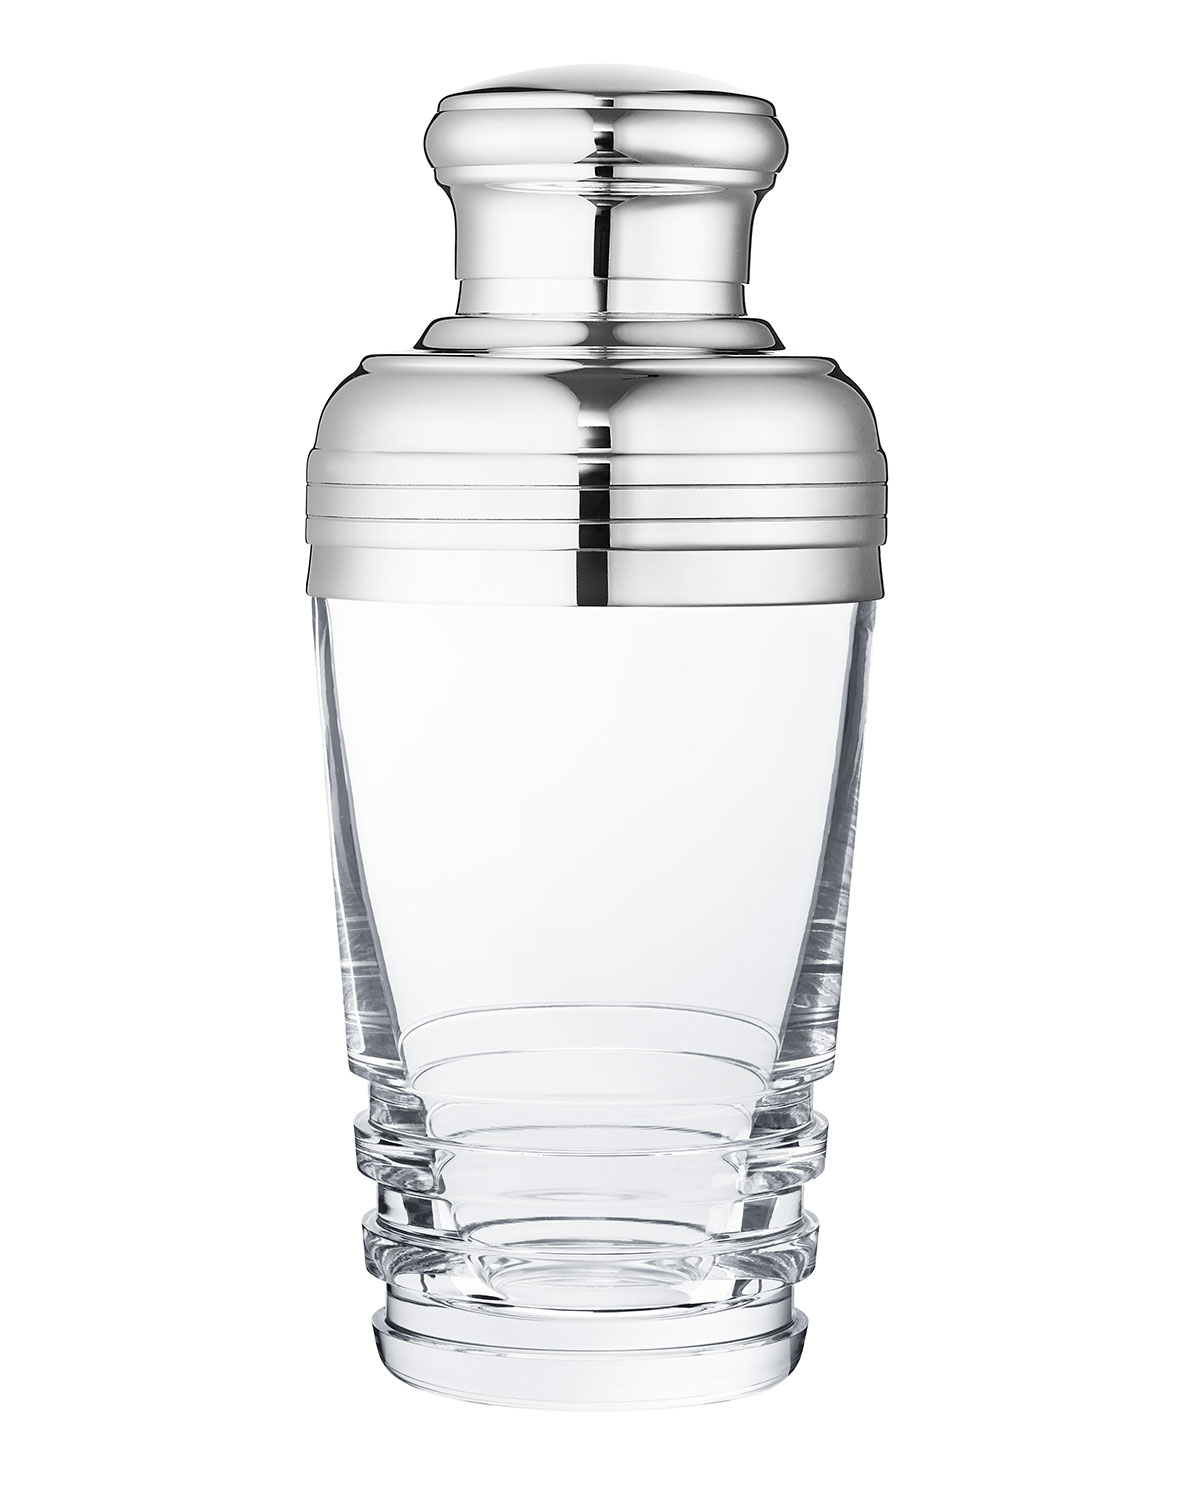 Saint Louis Crystal Barware & accessorys OXYMORE COCKTAIL SHAKER, CLEAR